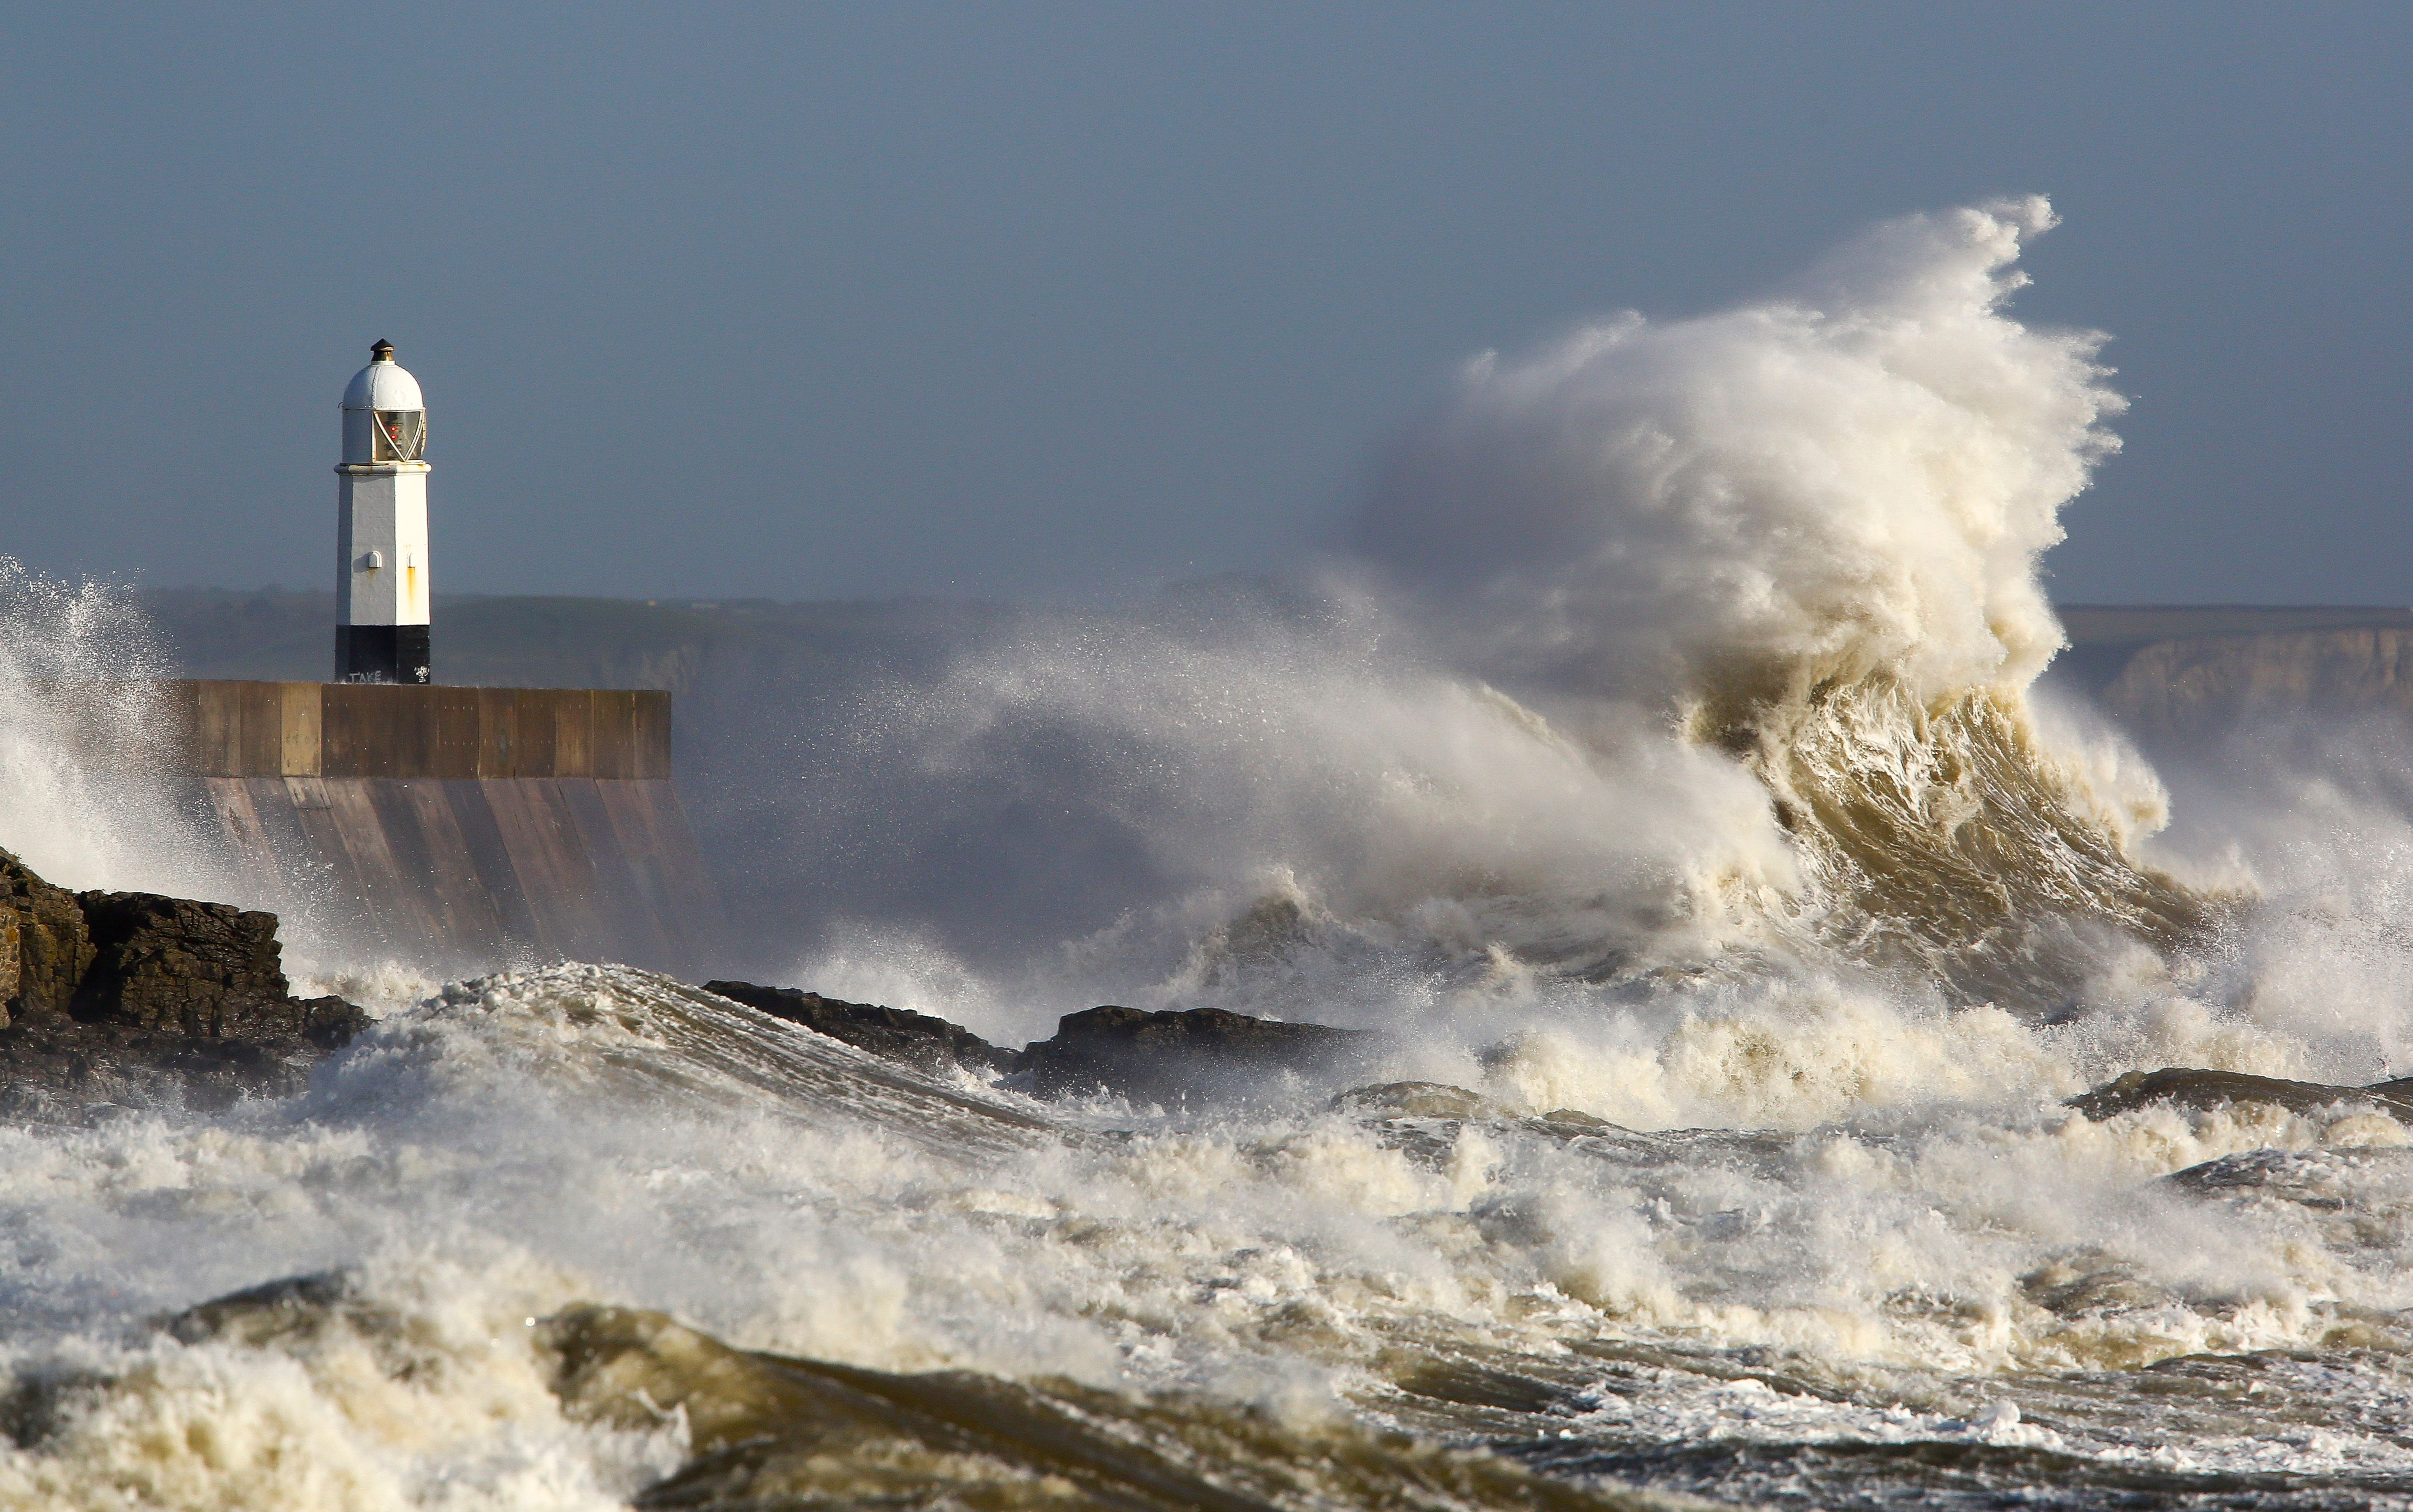 Wave Powered Water Pumps Could Be e a New Source of Clean Energy